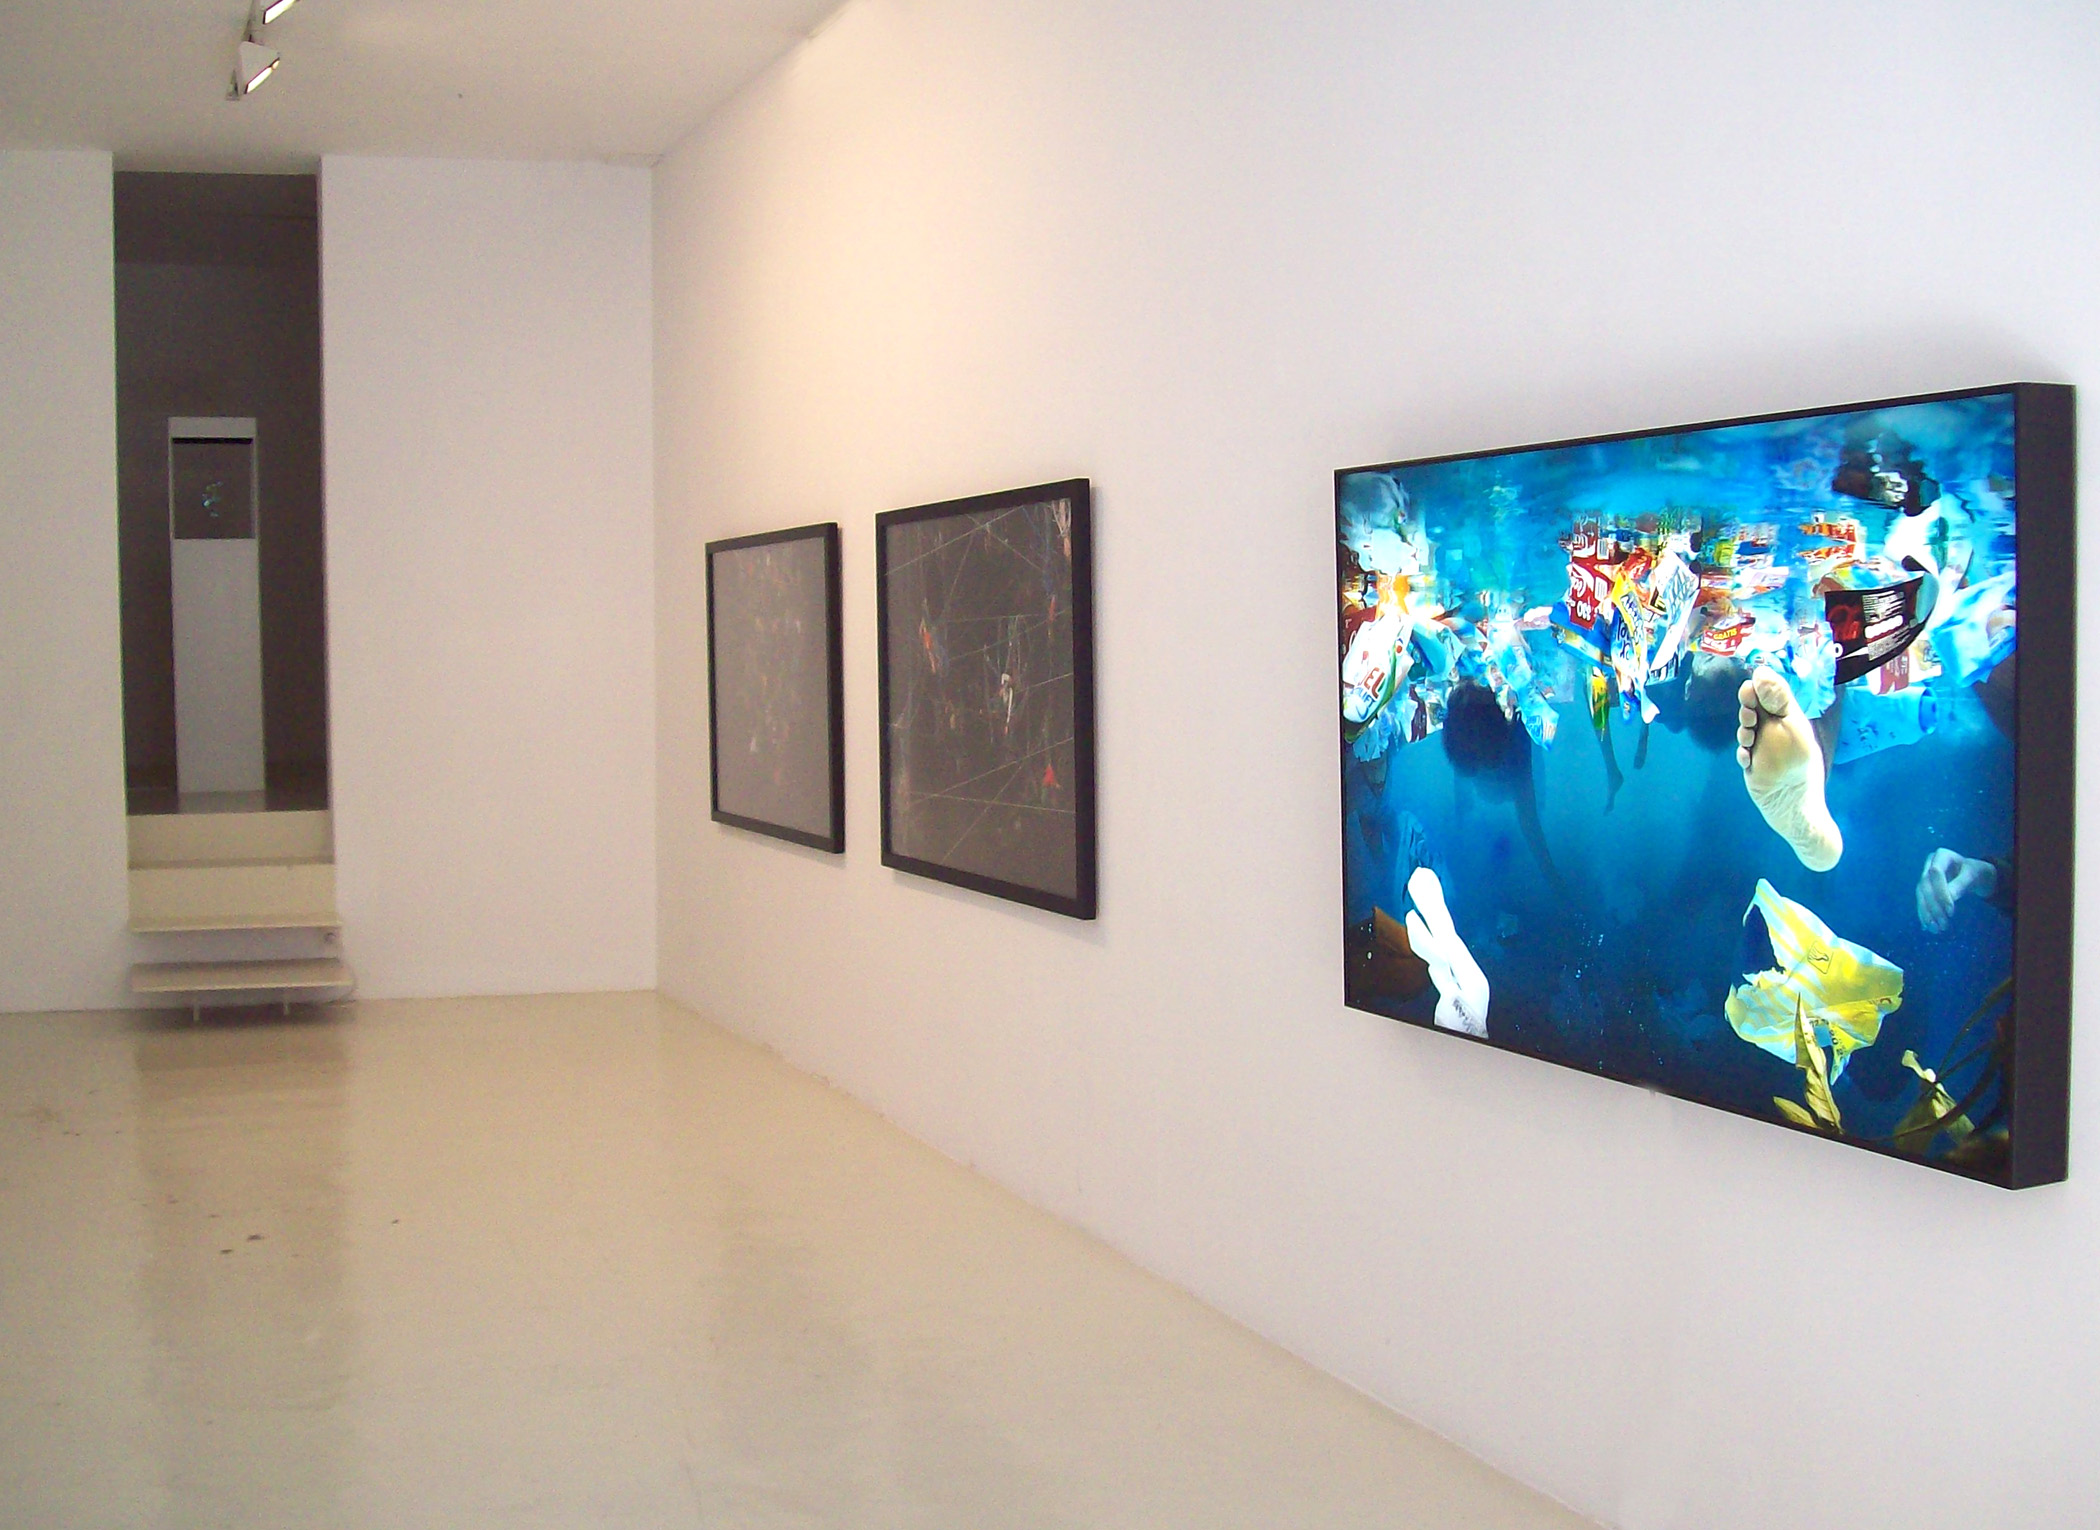 Exhibition view from Daniel Canogar, 2011